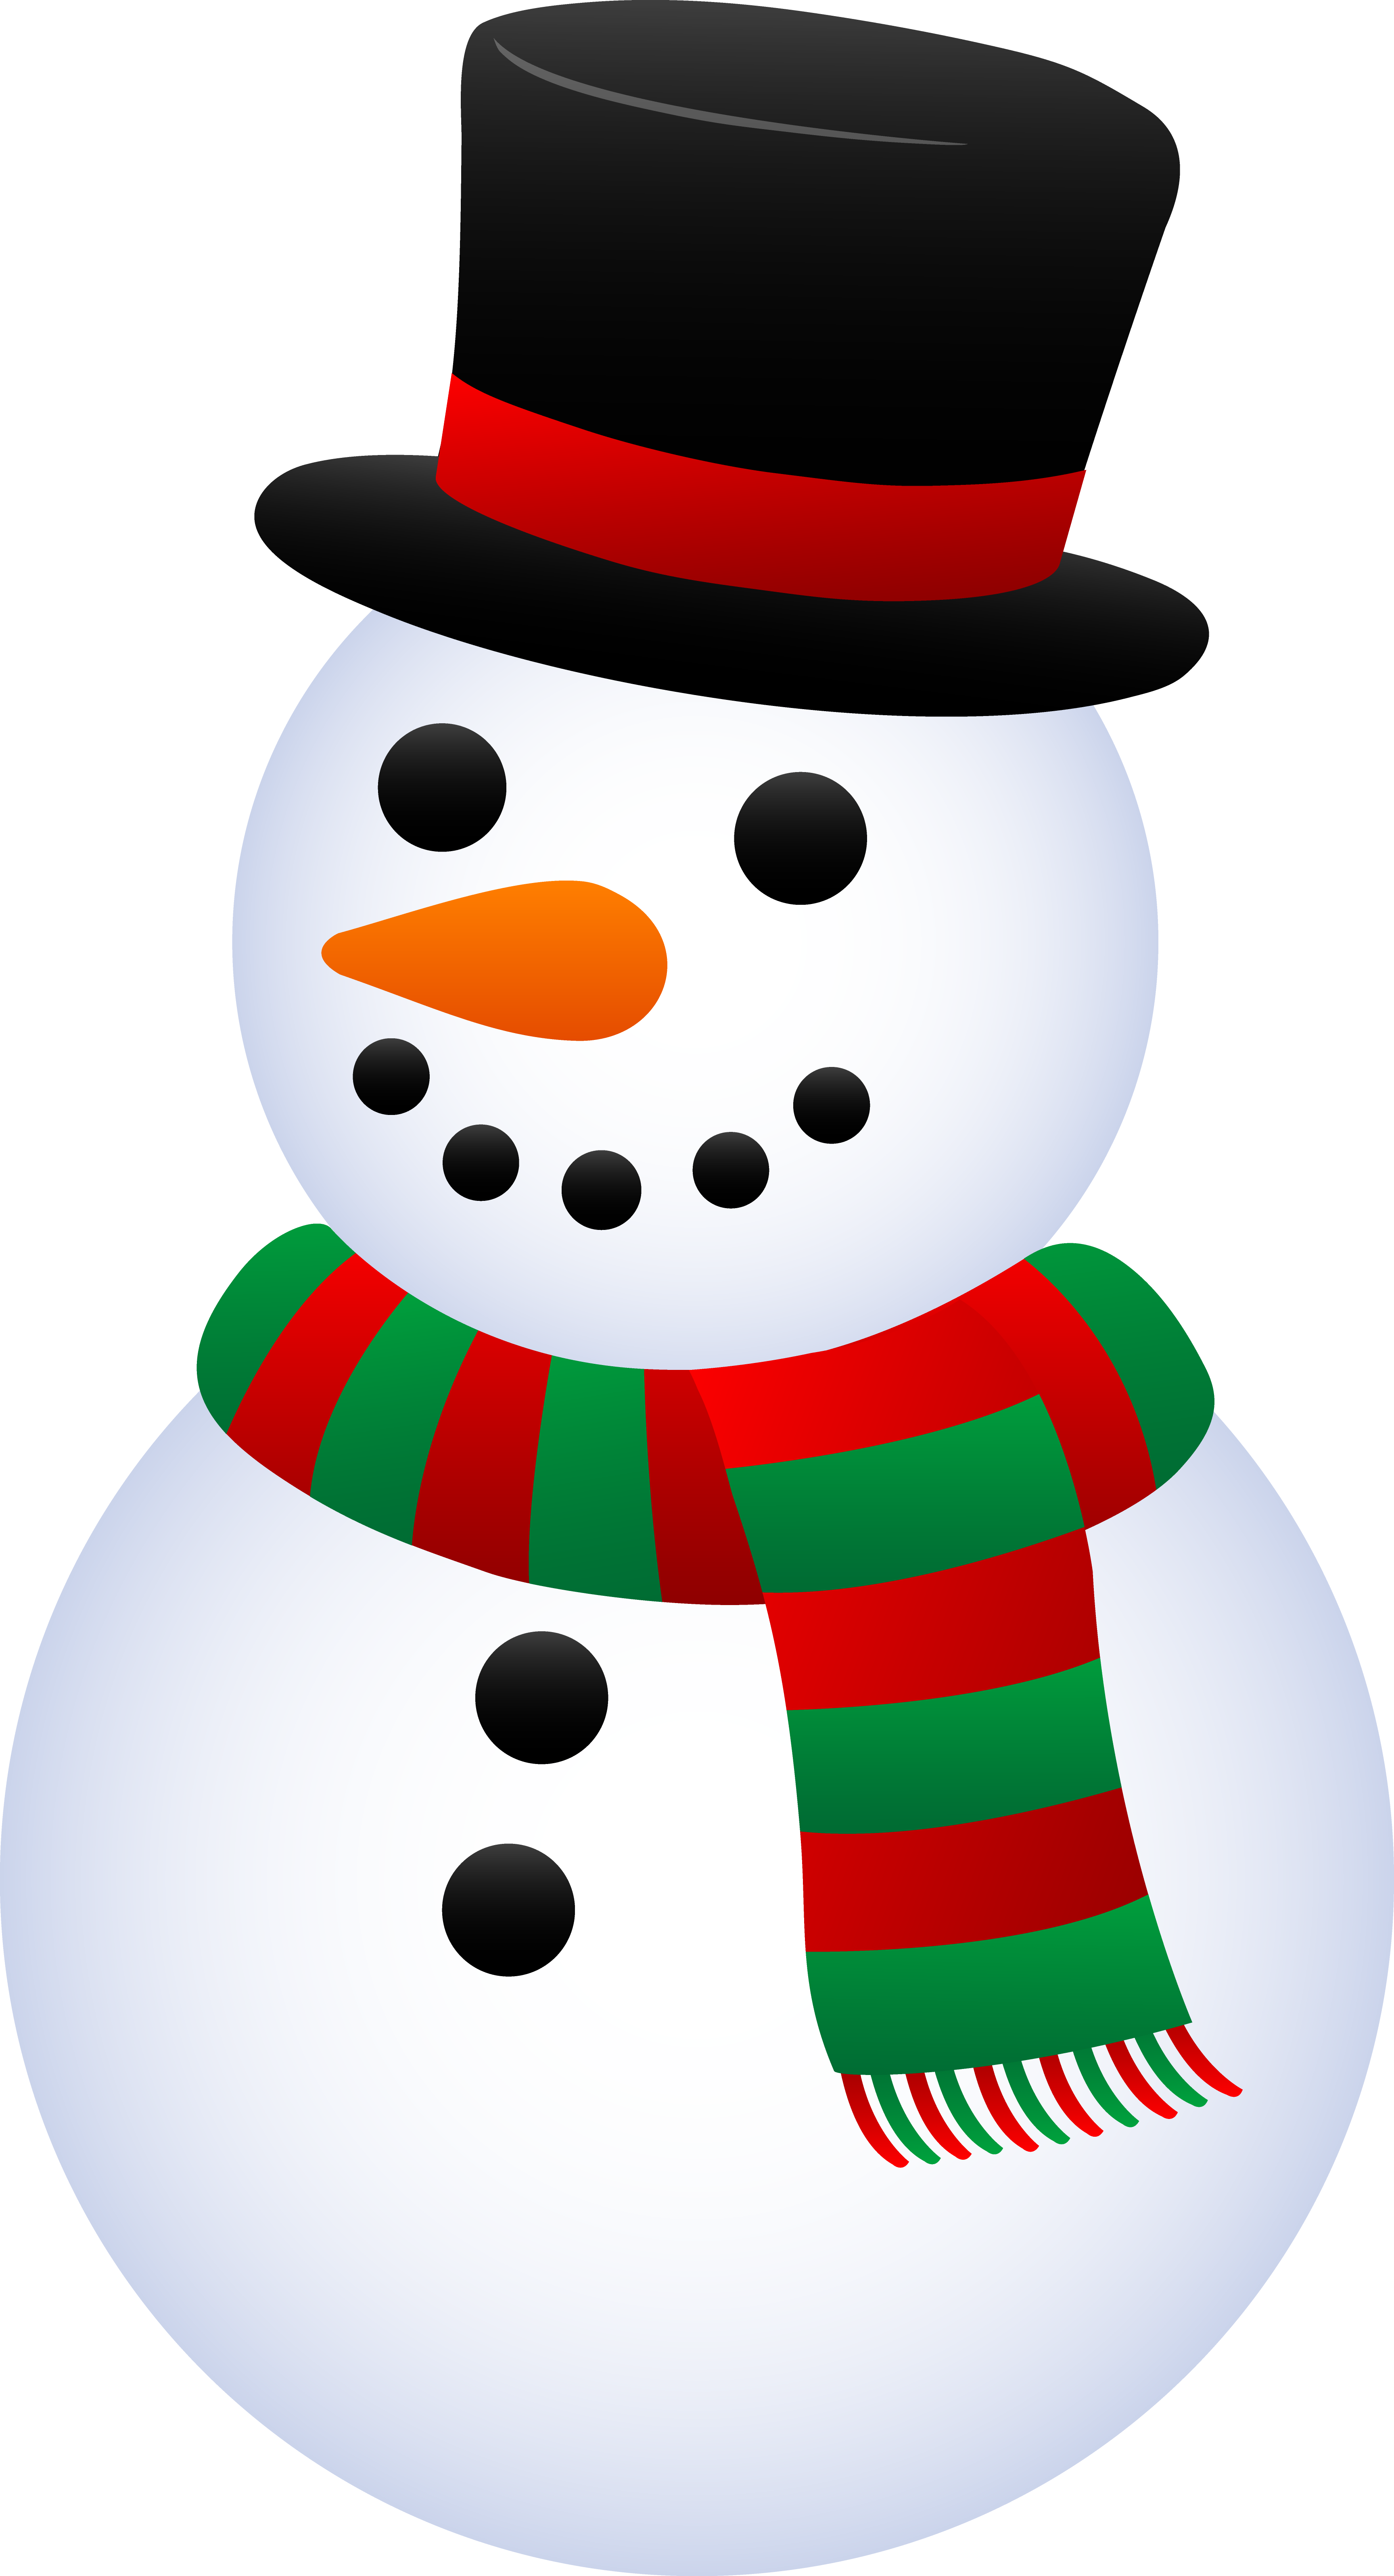 Frosty The Snowman Clipart - Cliparts.co